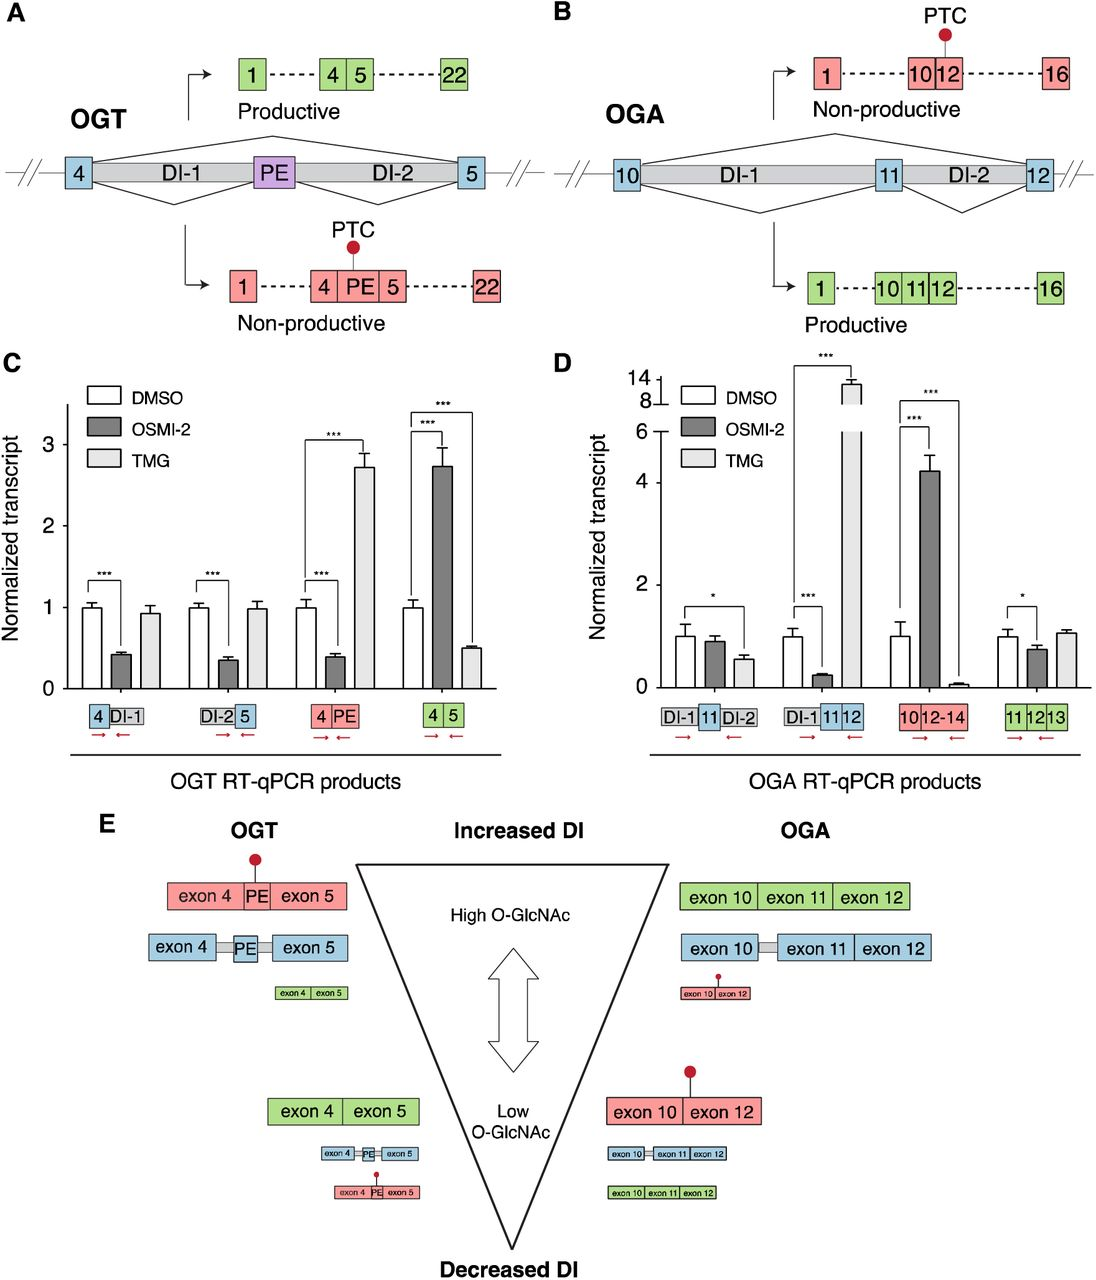 O-GlcNAc levels regulate OGT and OGA DI splicing so that exon inclusion/skipping results in opposite effects on productive message. (A) Splice junctions derived from RNA-seq for OGT and OGA show two predominant fully-spliced isoforms, a functional one for OGT (A) and a non-functional one for OGA (B) . HEK-293T cells were treated with DMSO (white bars), OGT inhibitor (10 μM OSMI-2, dark grey) or OGA inhibitor (5 μM TMG, light grey) for 2 h and RT-qPCR was used to measure levels of the indicated products for OGT (C) or OGA (D) , which report on the presence of DIs as well as skipped or included exons. Red arrows depict location of primers with respect to detected products. Products levels were determined relative to a housekeeping gene (actin) and were normalized to the DMSO control (n ≥ 3 biological replicates; mean ± s.d, * P ≤ 0.05, *** P ≤ 0.001, two-tailed Student's t -test). (E) Low O-GlcNAc favors the non-DI pathway to increase functional OGT mRNA and non-functional OGA mRNA. High O-GlcNAc favors formation of DIs, the splicing of which, increases non-functional OGT and functional OGA .